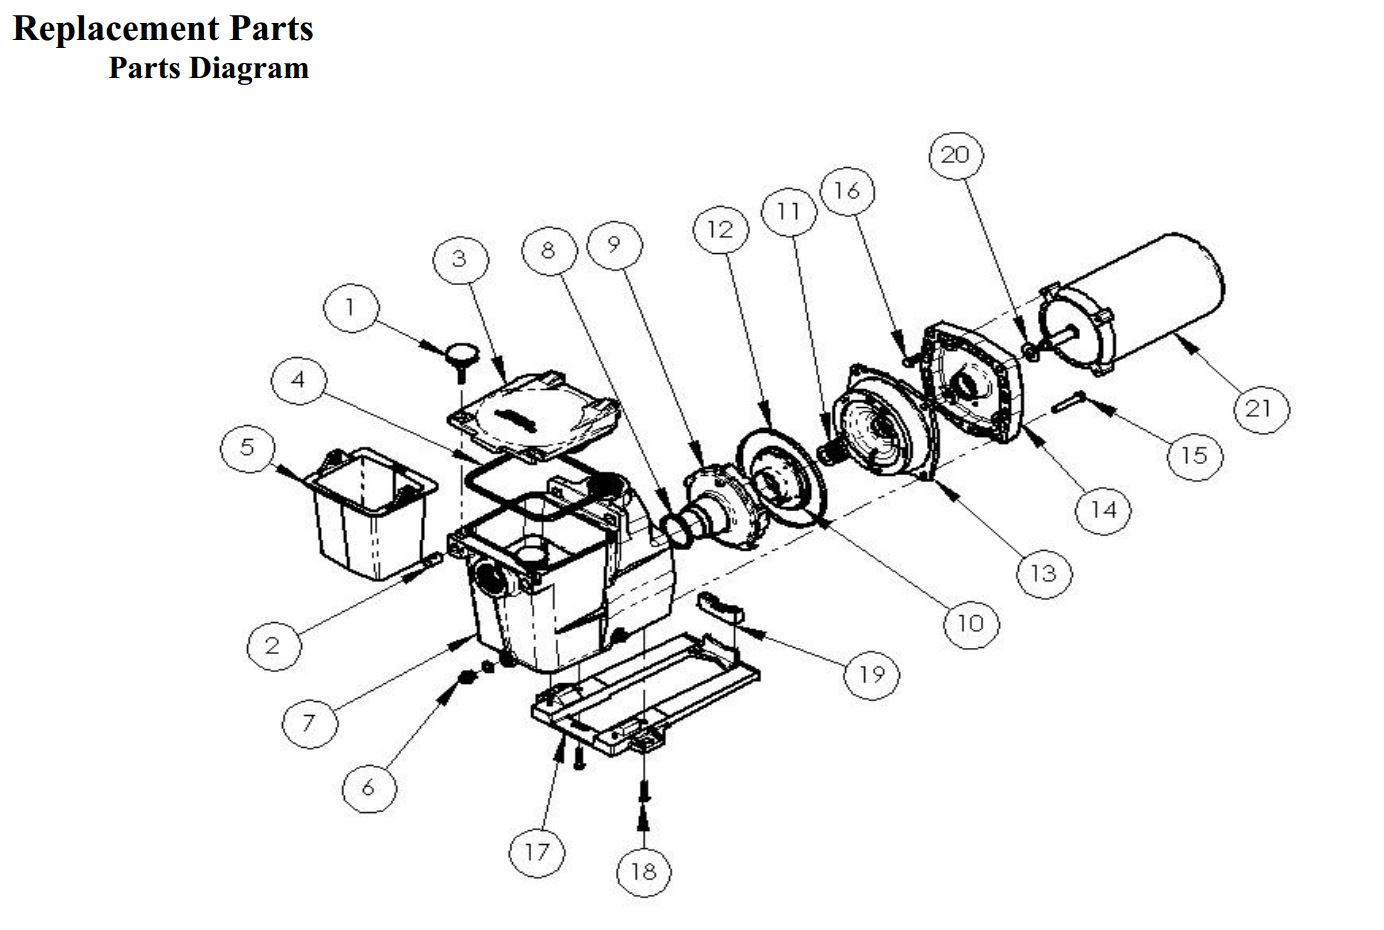 Motor Parts Ao Smith Motor Parts Diagram